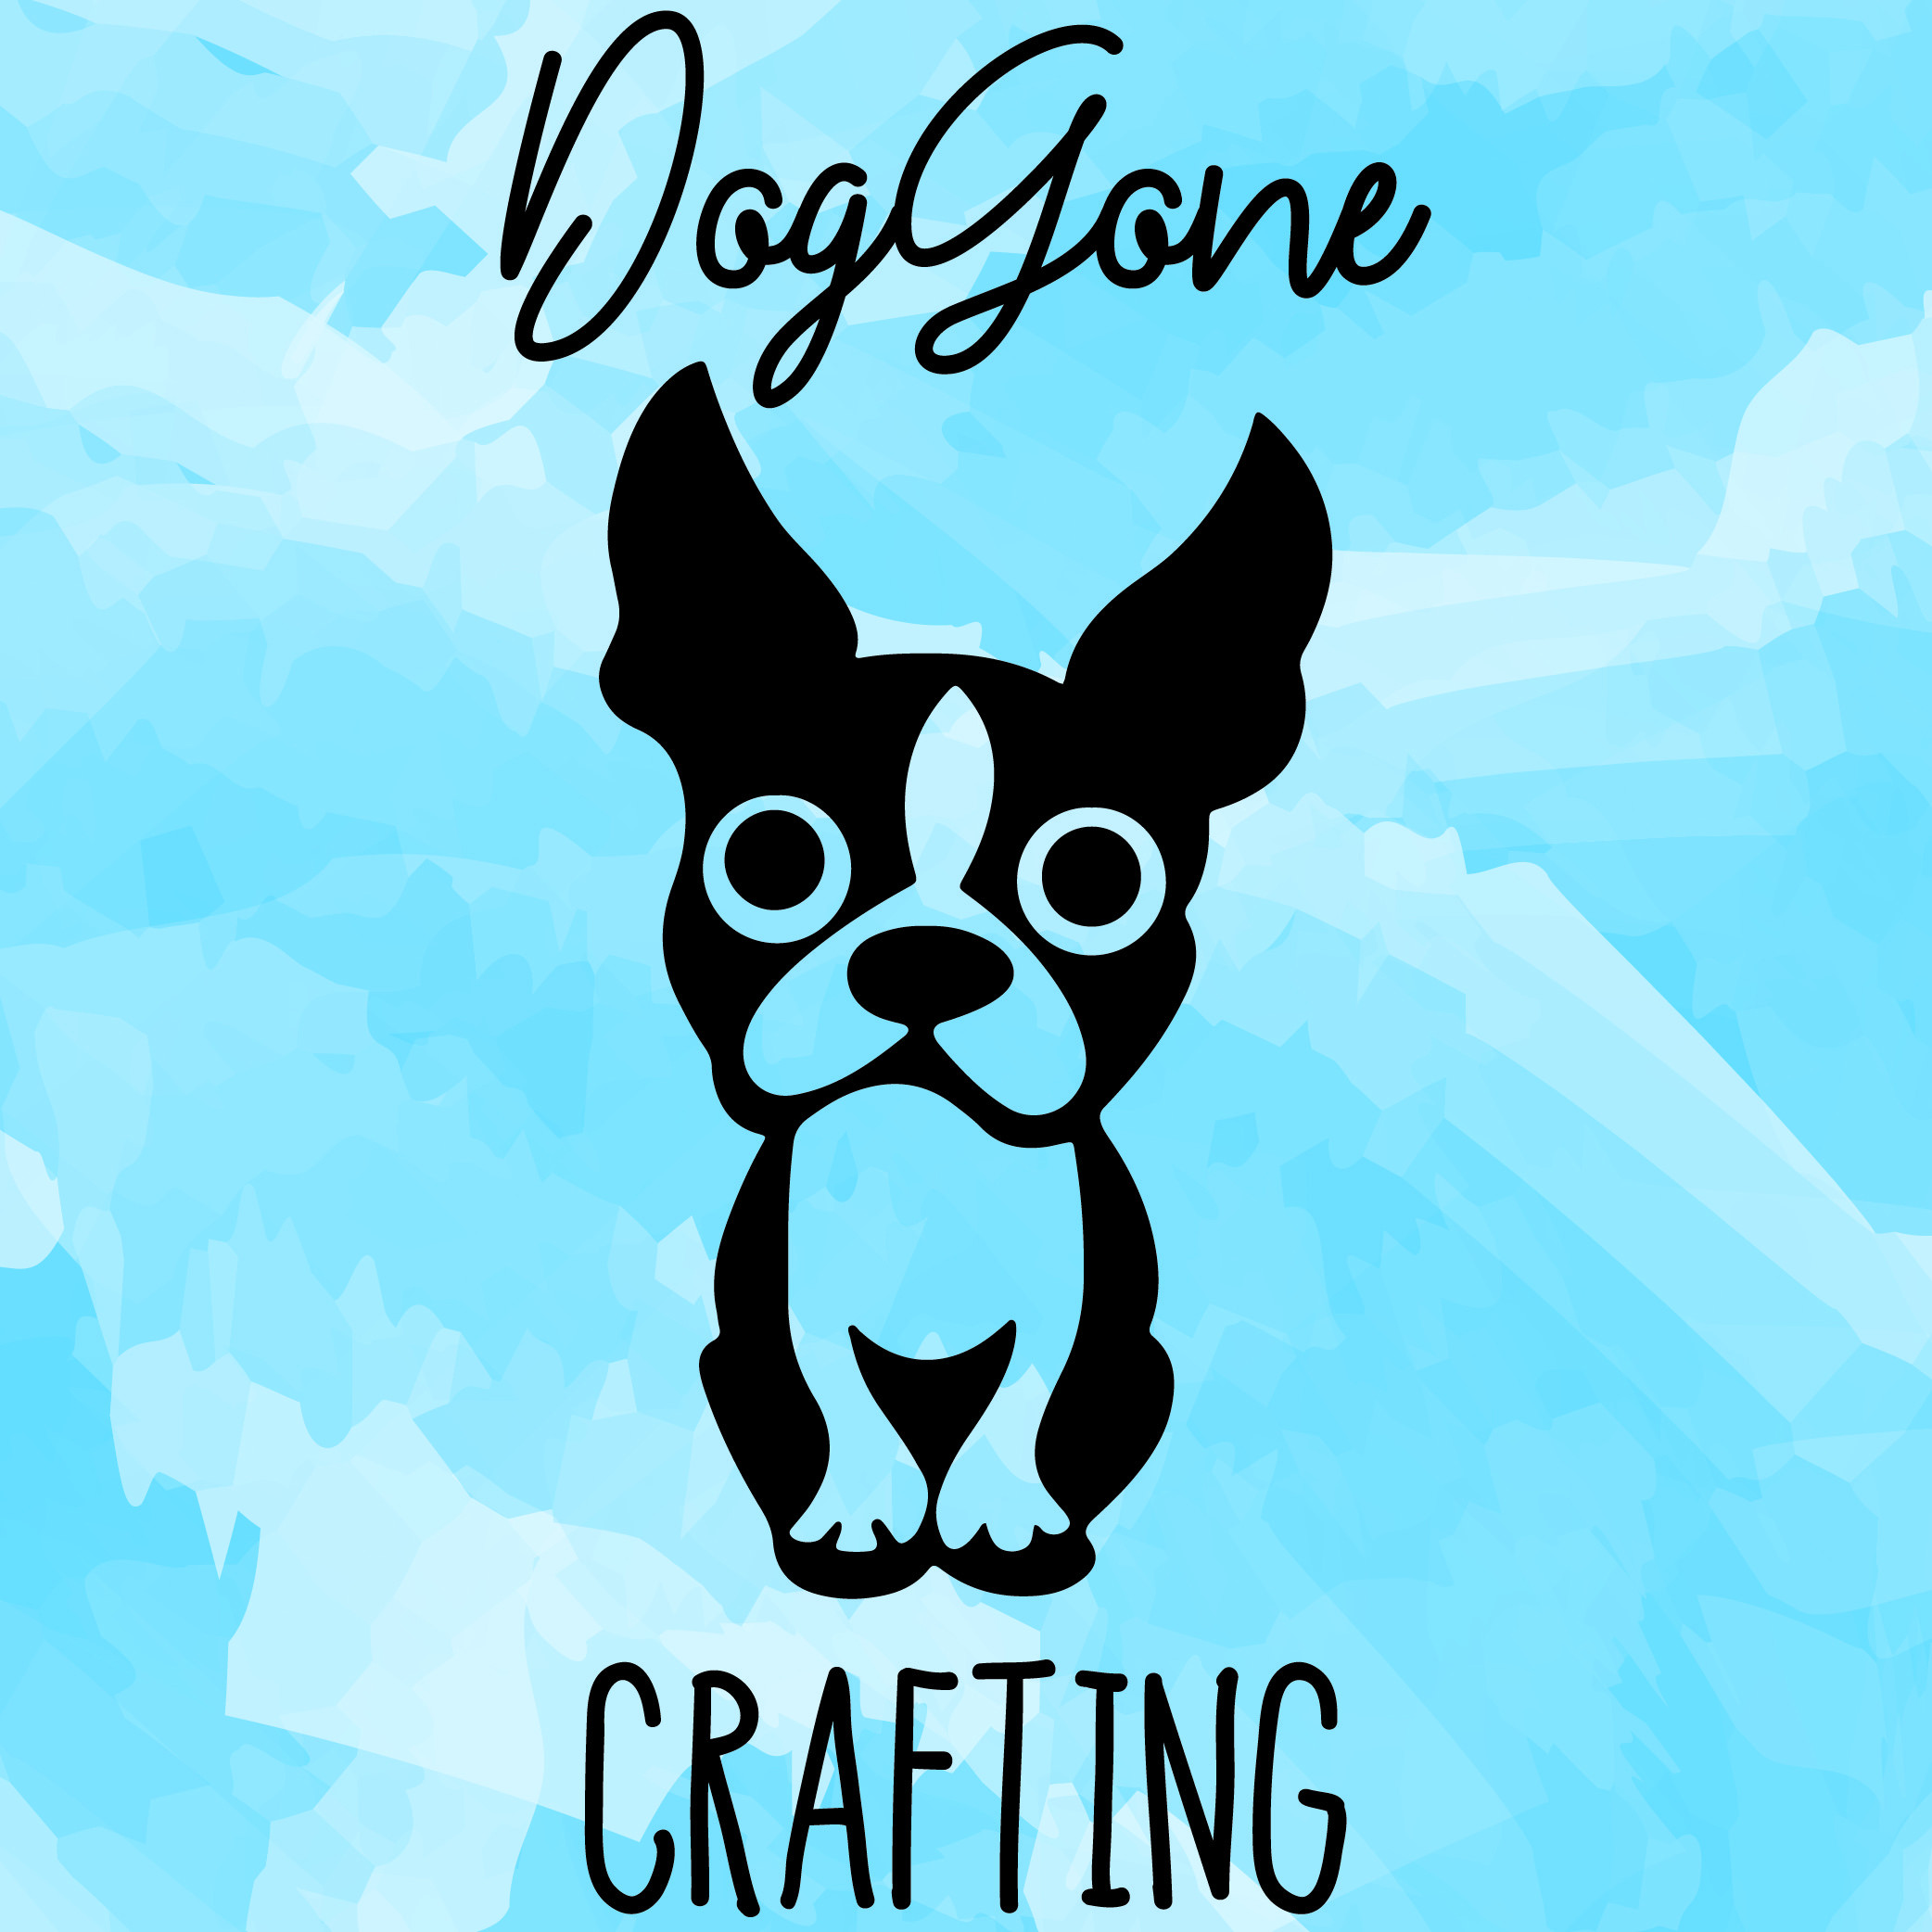 DogGone Crafting's profile picture